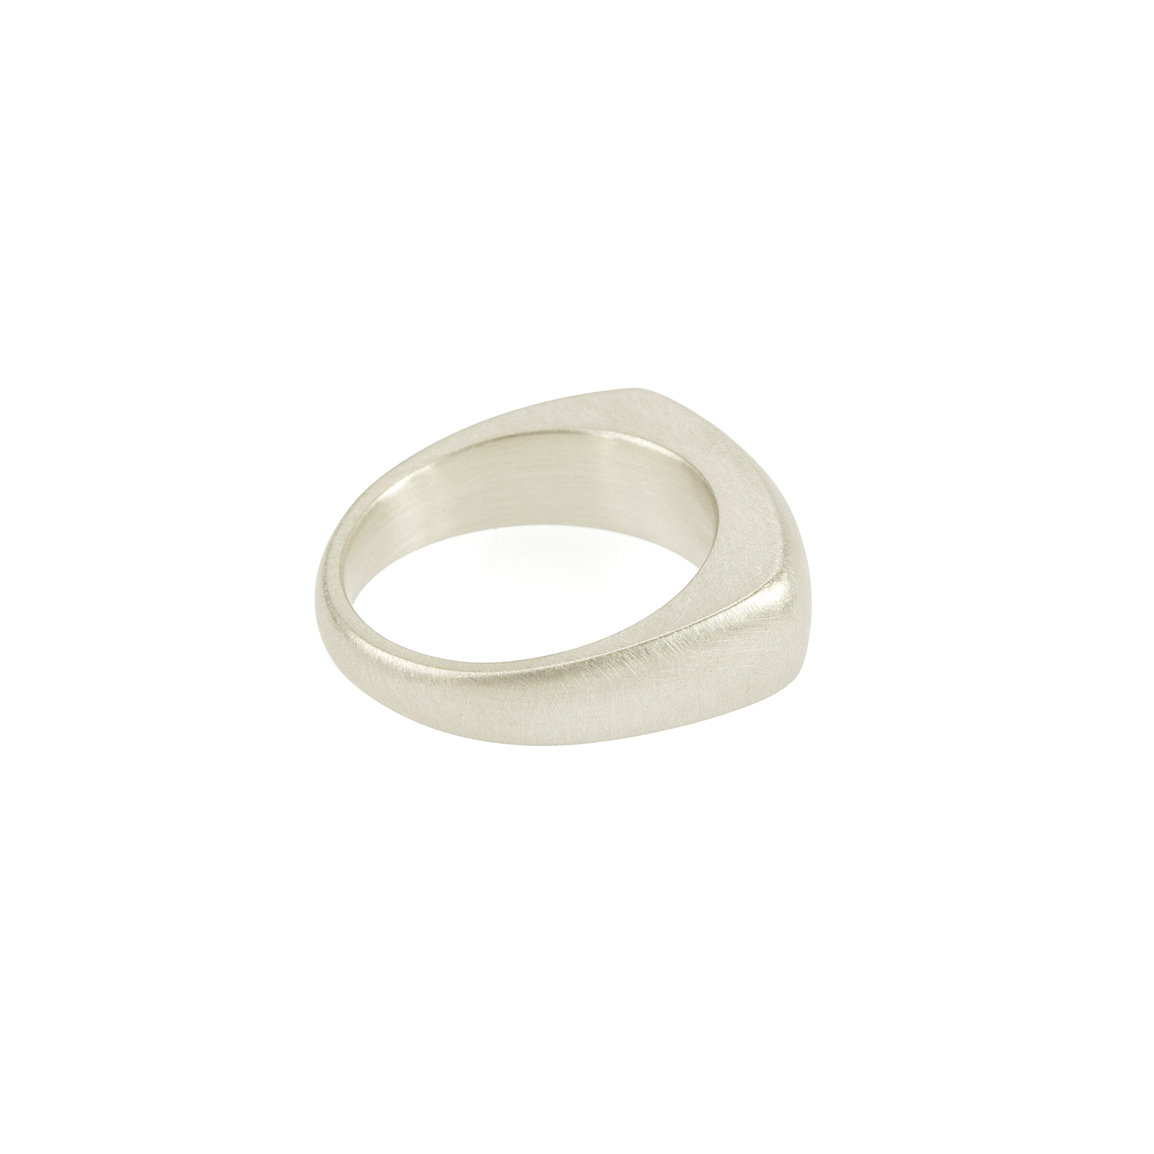 Inspired by misty mornings by the lake, choosing the perfect pebble for skipping, assessing its weight and smooth tactility.  The pebble rings are designed to imbue this same quiet contemplation.